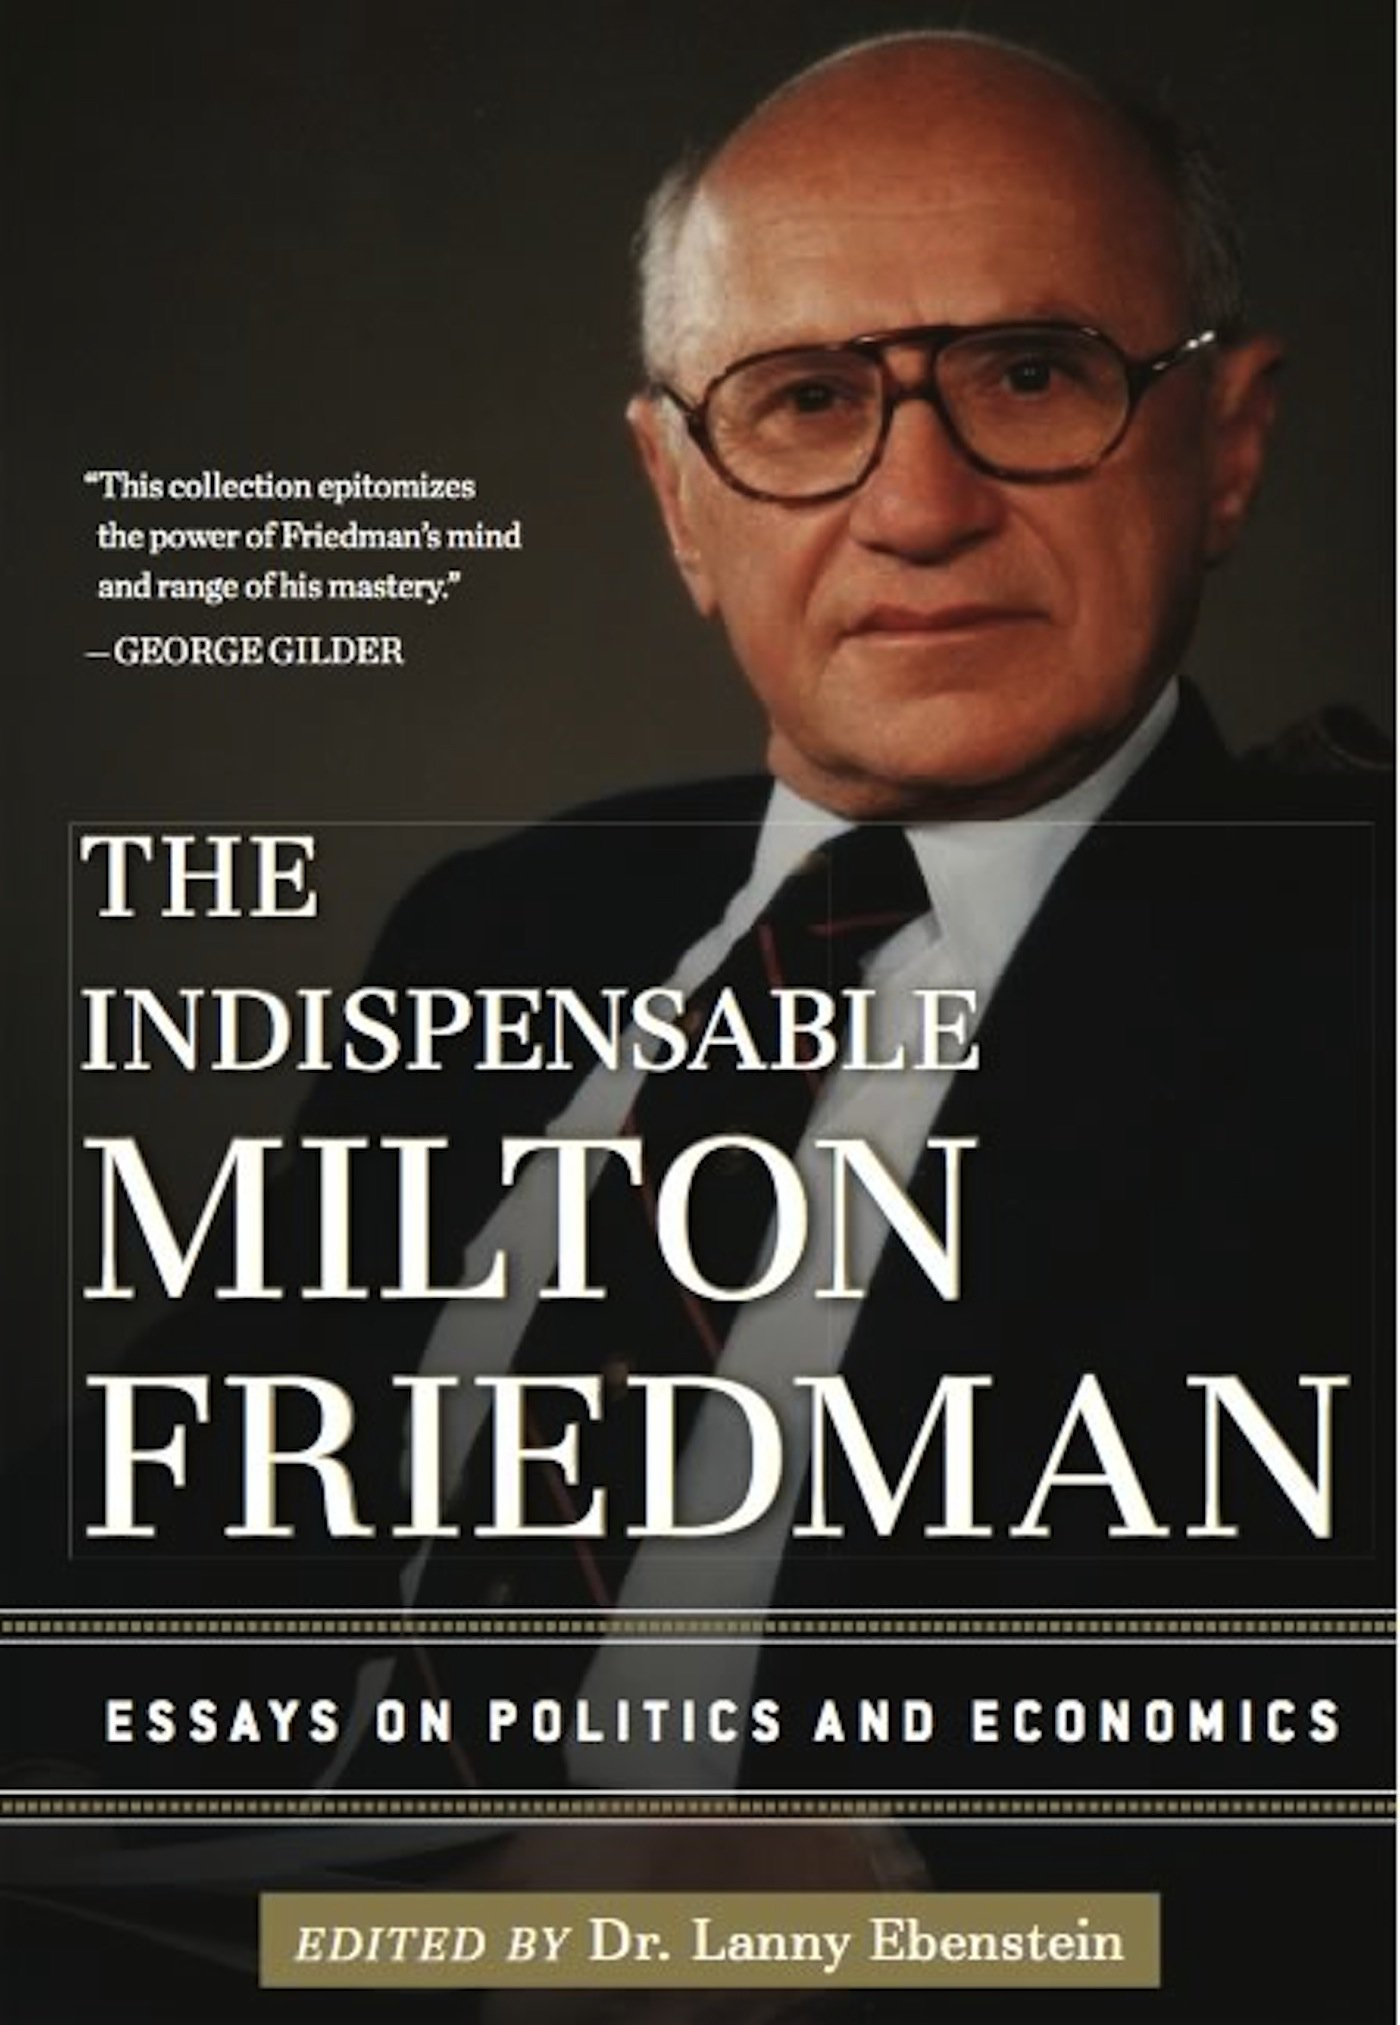 politics essays the indispensable milton friedman essays on  the indispensable milton friedman essays on politics and the indispensable milton friedman essays on politics and oxbridge essays review